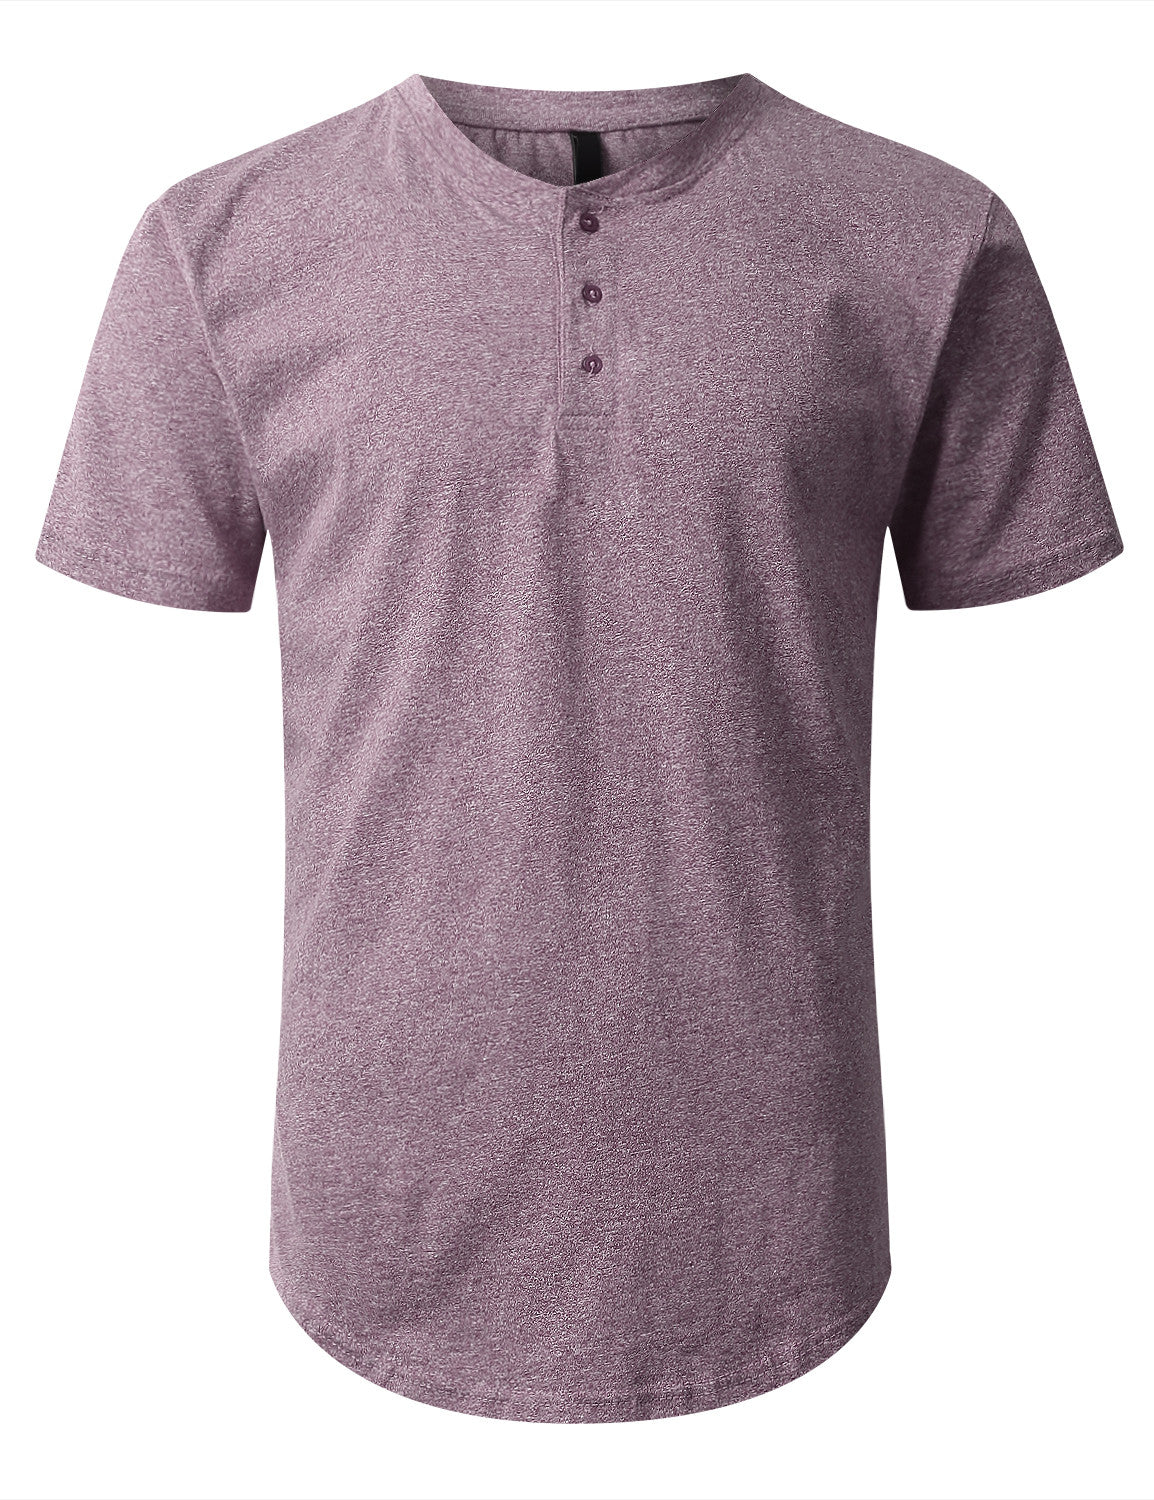 PURPLE Melange Henley T-shirt - URBANCREWS